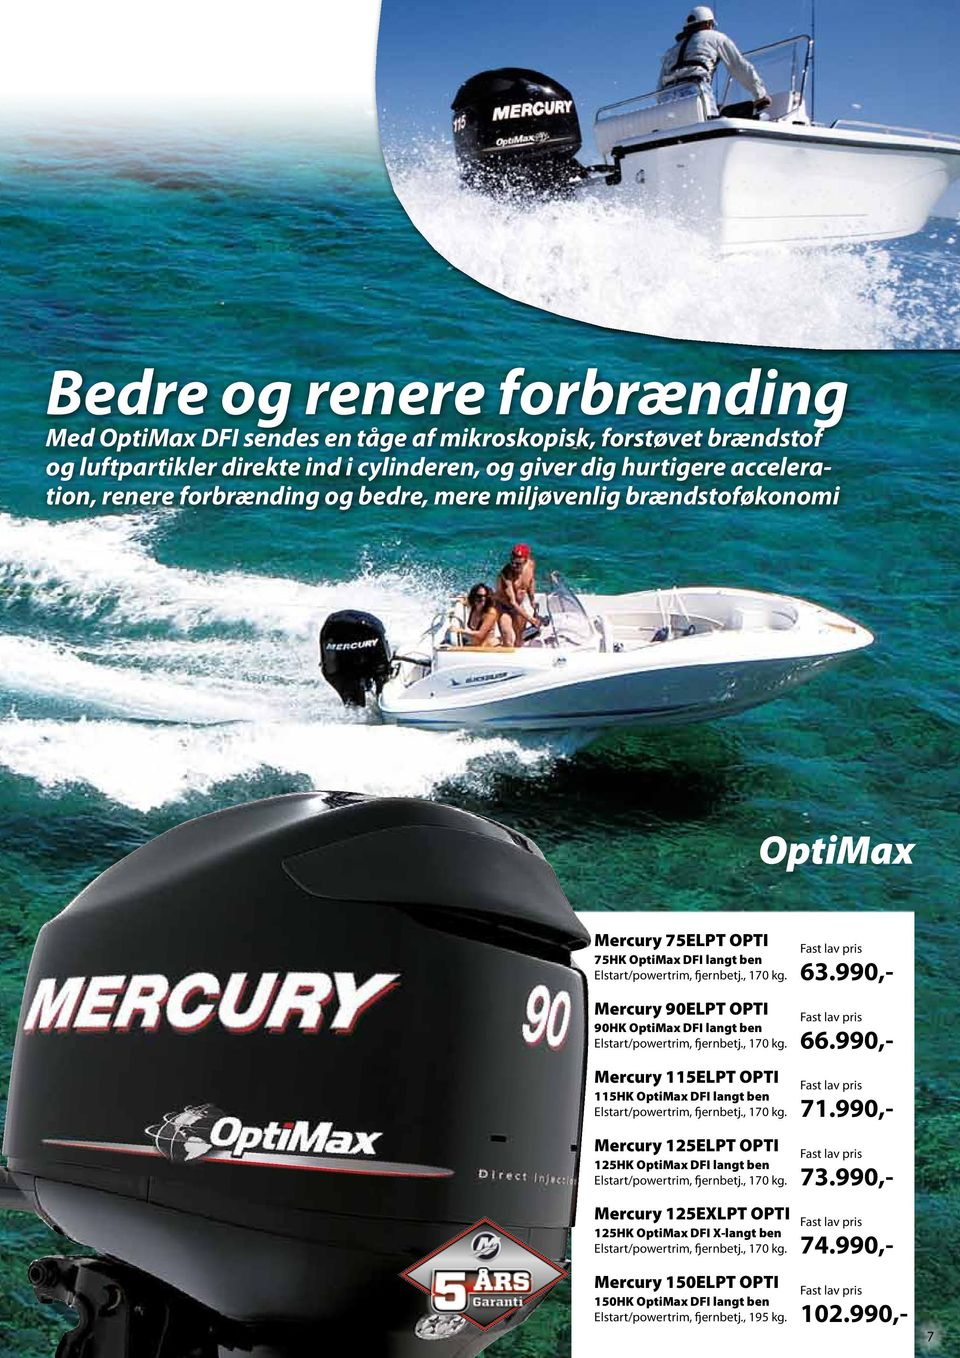 Mercury 90ELPT OPTI 90HK OptiMax DFI langt ben Elstart/powertrim, fjernbetj., 170 kg. Mercury 115ELPT OPTI 115HK OptiMax DFI langt ben Elstart/powertrim, fjernbetj., 170 kg. Mercury 125ELPT OPTI 125HK OptiMax DFI langt ben Elstart/powertrim, fjernbetj.